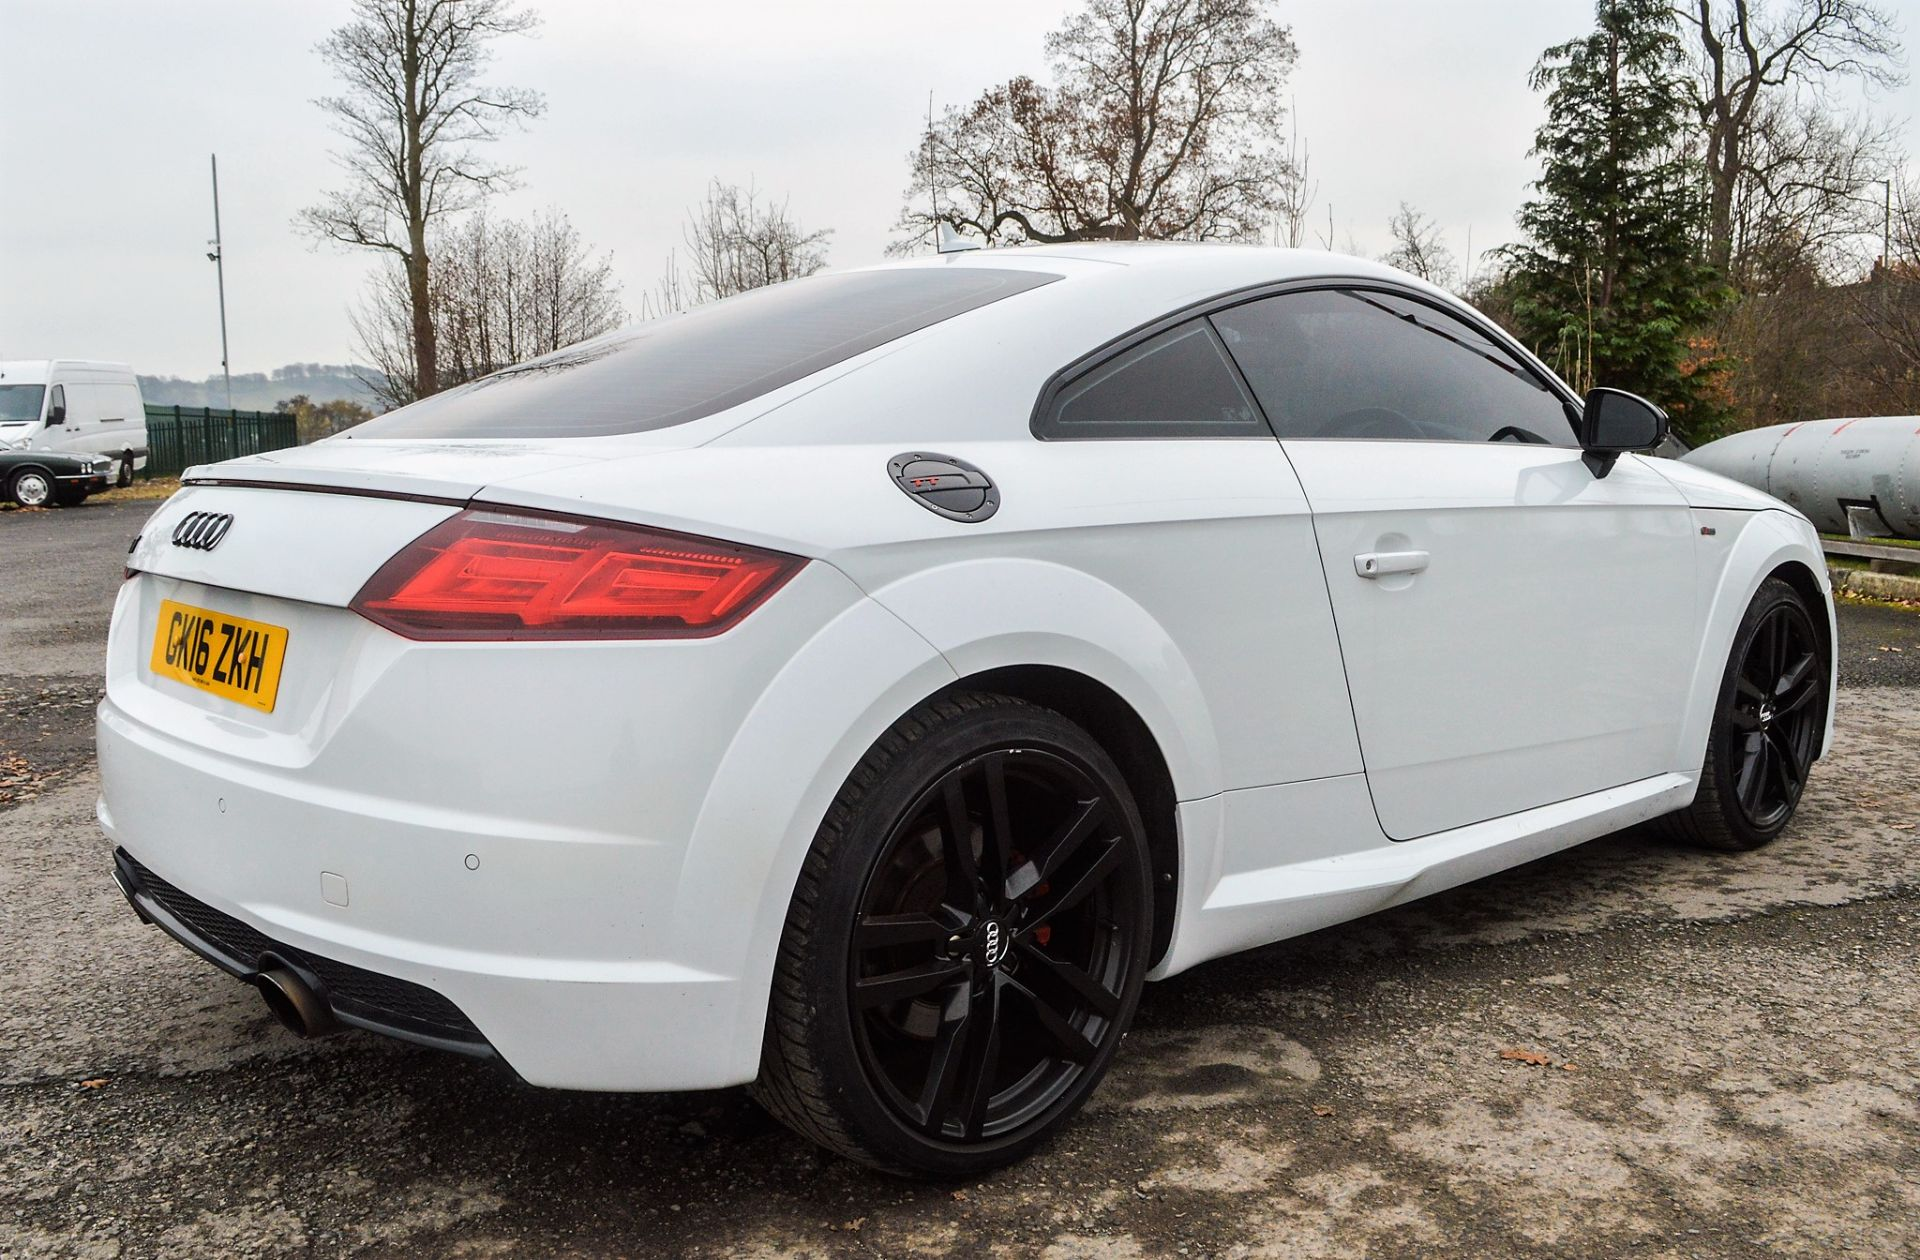 Lot 18A - Audi TT TFSi Quattro S-Line 2 litre petrol automatic coupe car Registration Number: GK16 ZKH Date of